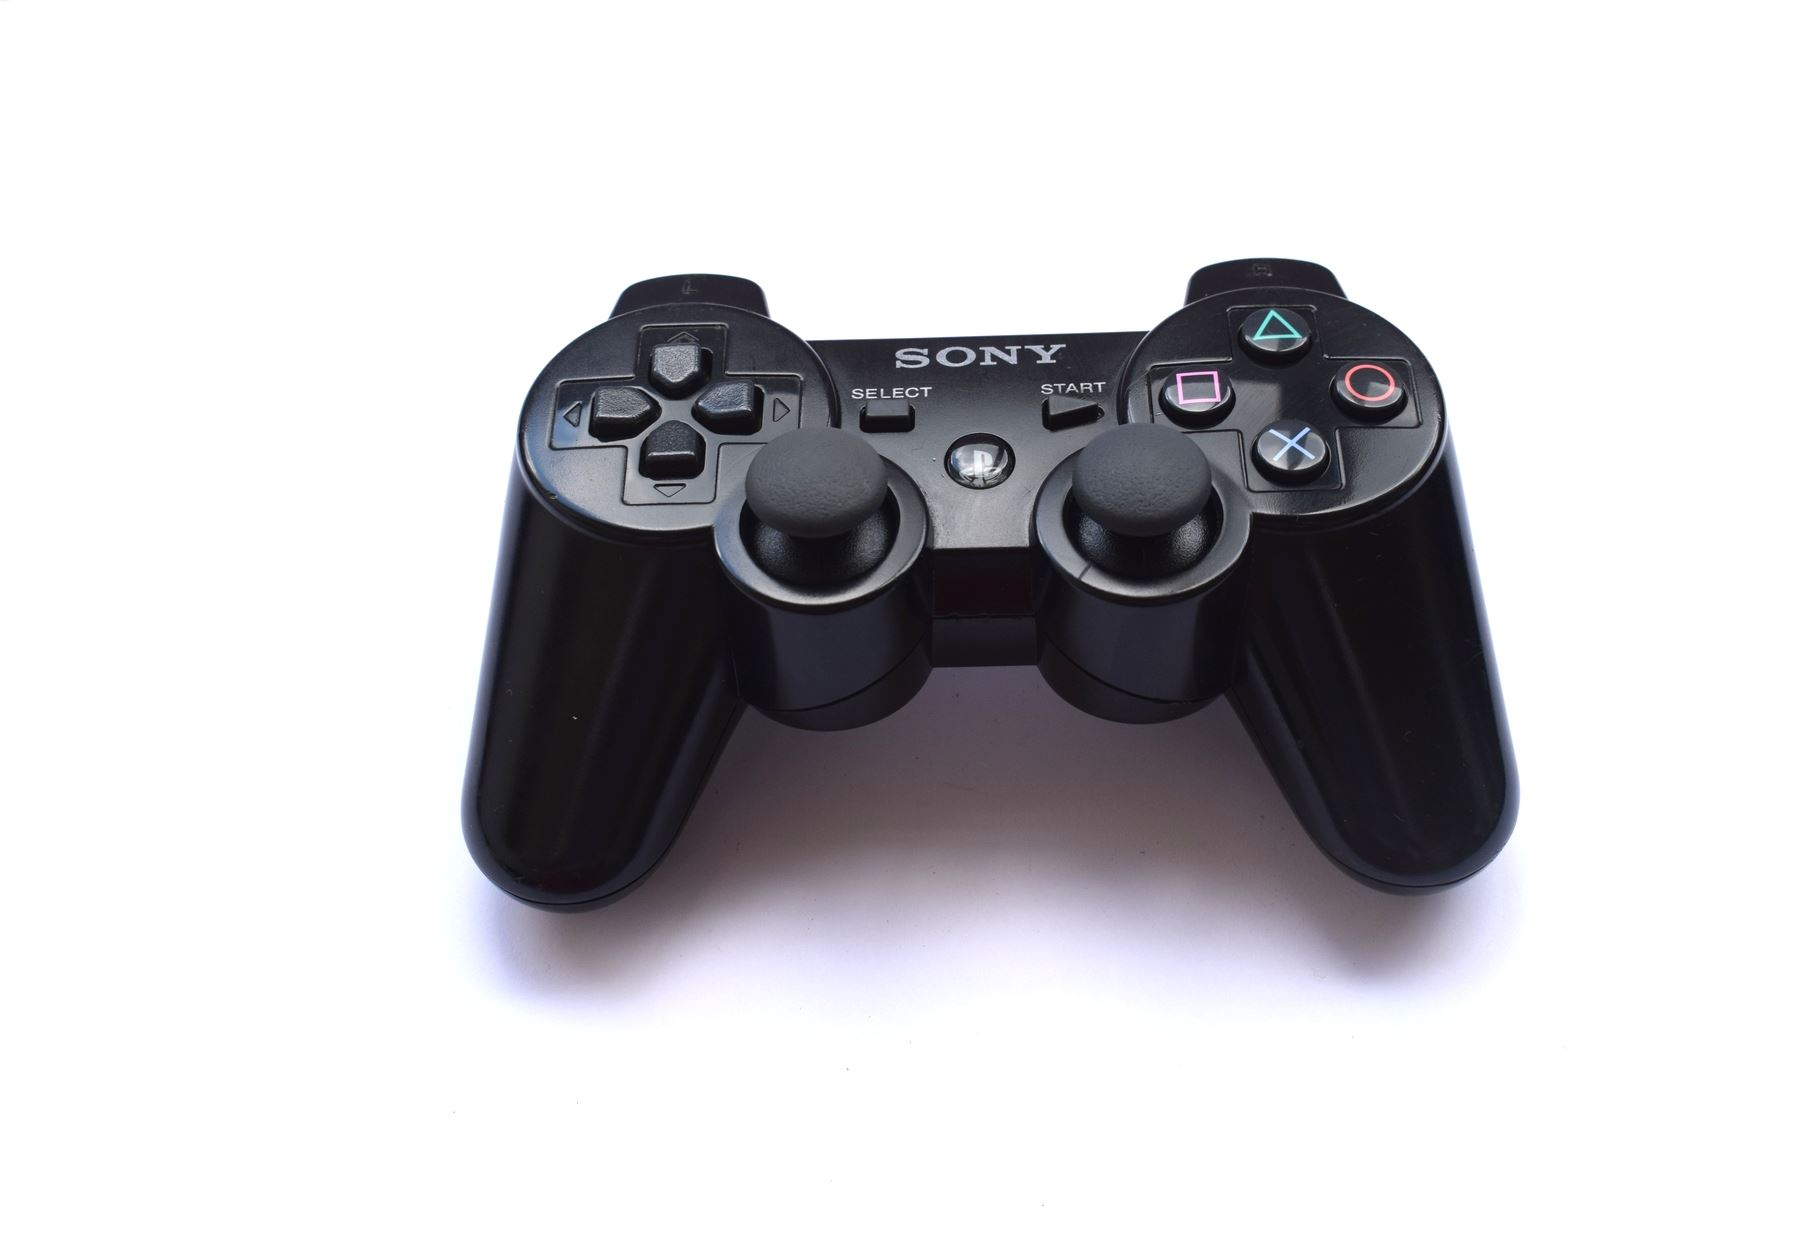 Official-Original-Sony-Playstation-Dual-Shock-3-PS3-Controller-Multiple-Colours thumbnail 60